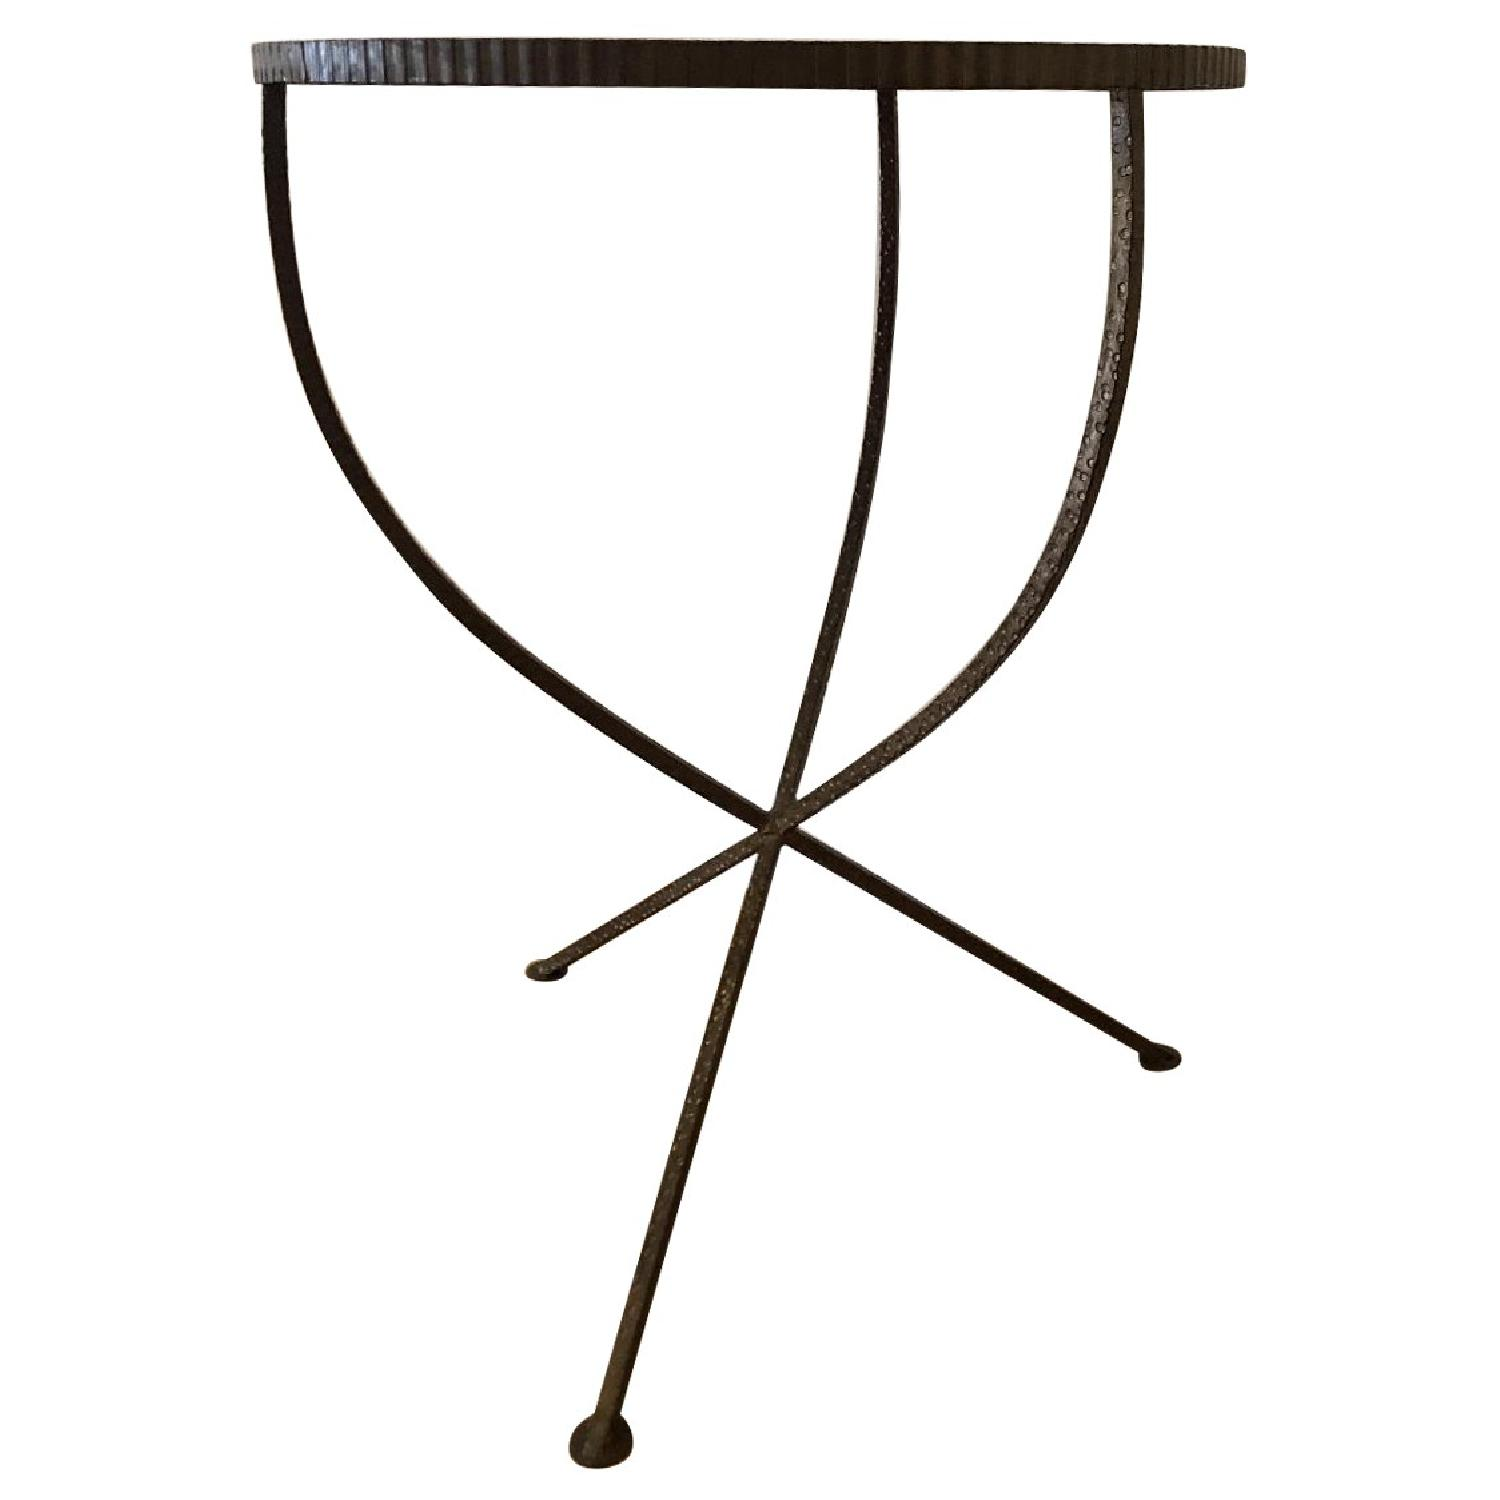 ABC Carpet and Home Iron Side Table w/ Mirrored Top - image-0